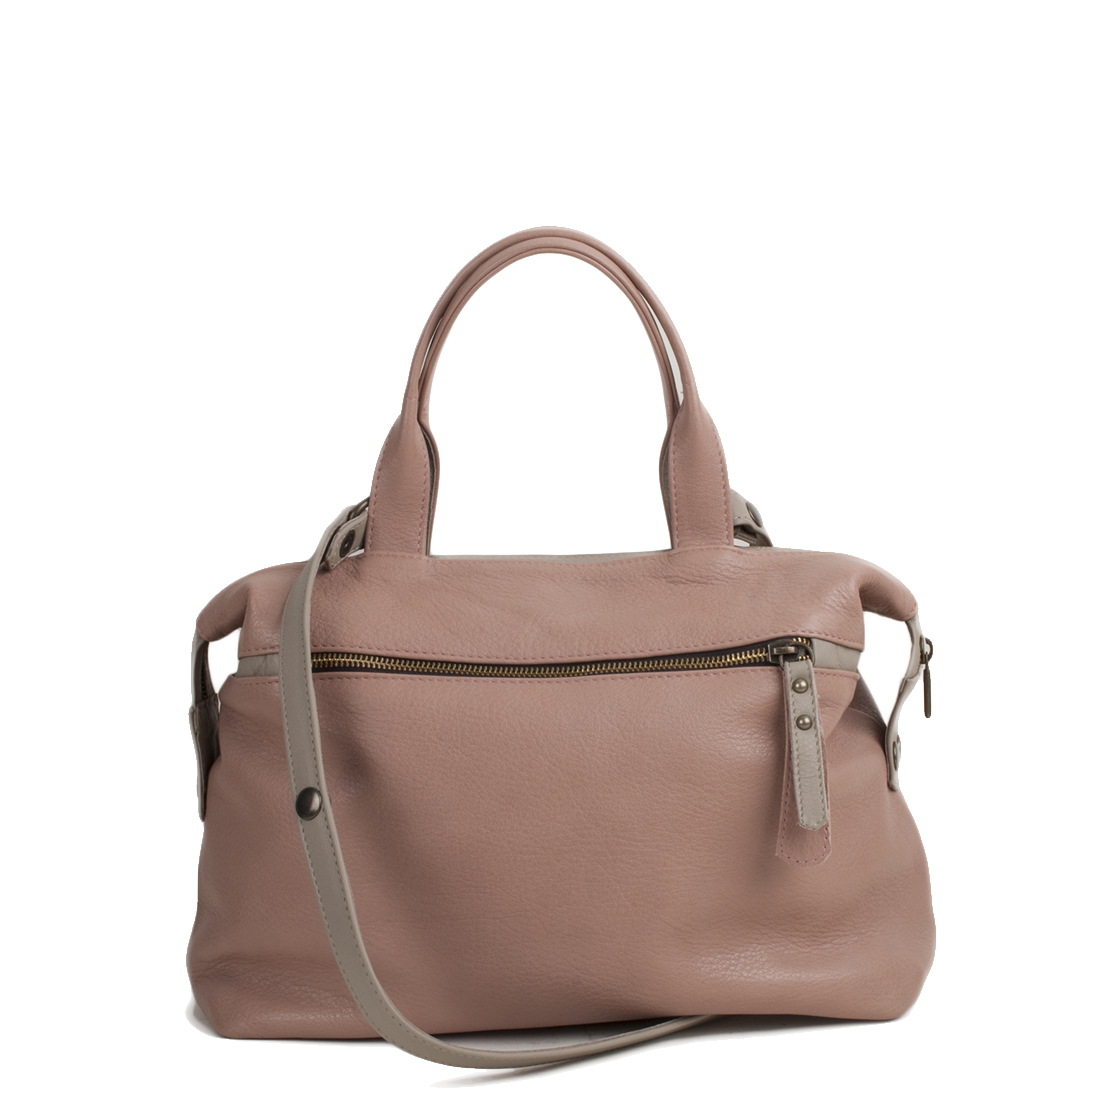 Grace Pink Chalk Leather Tote Bag